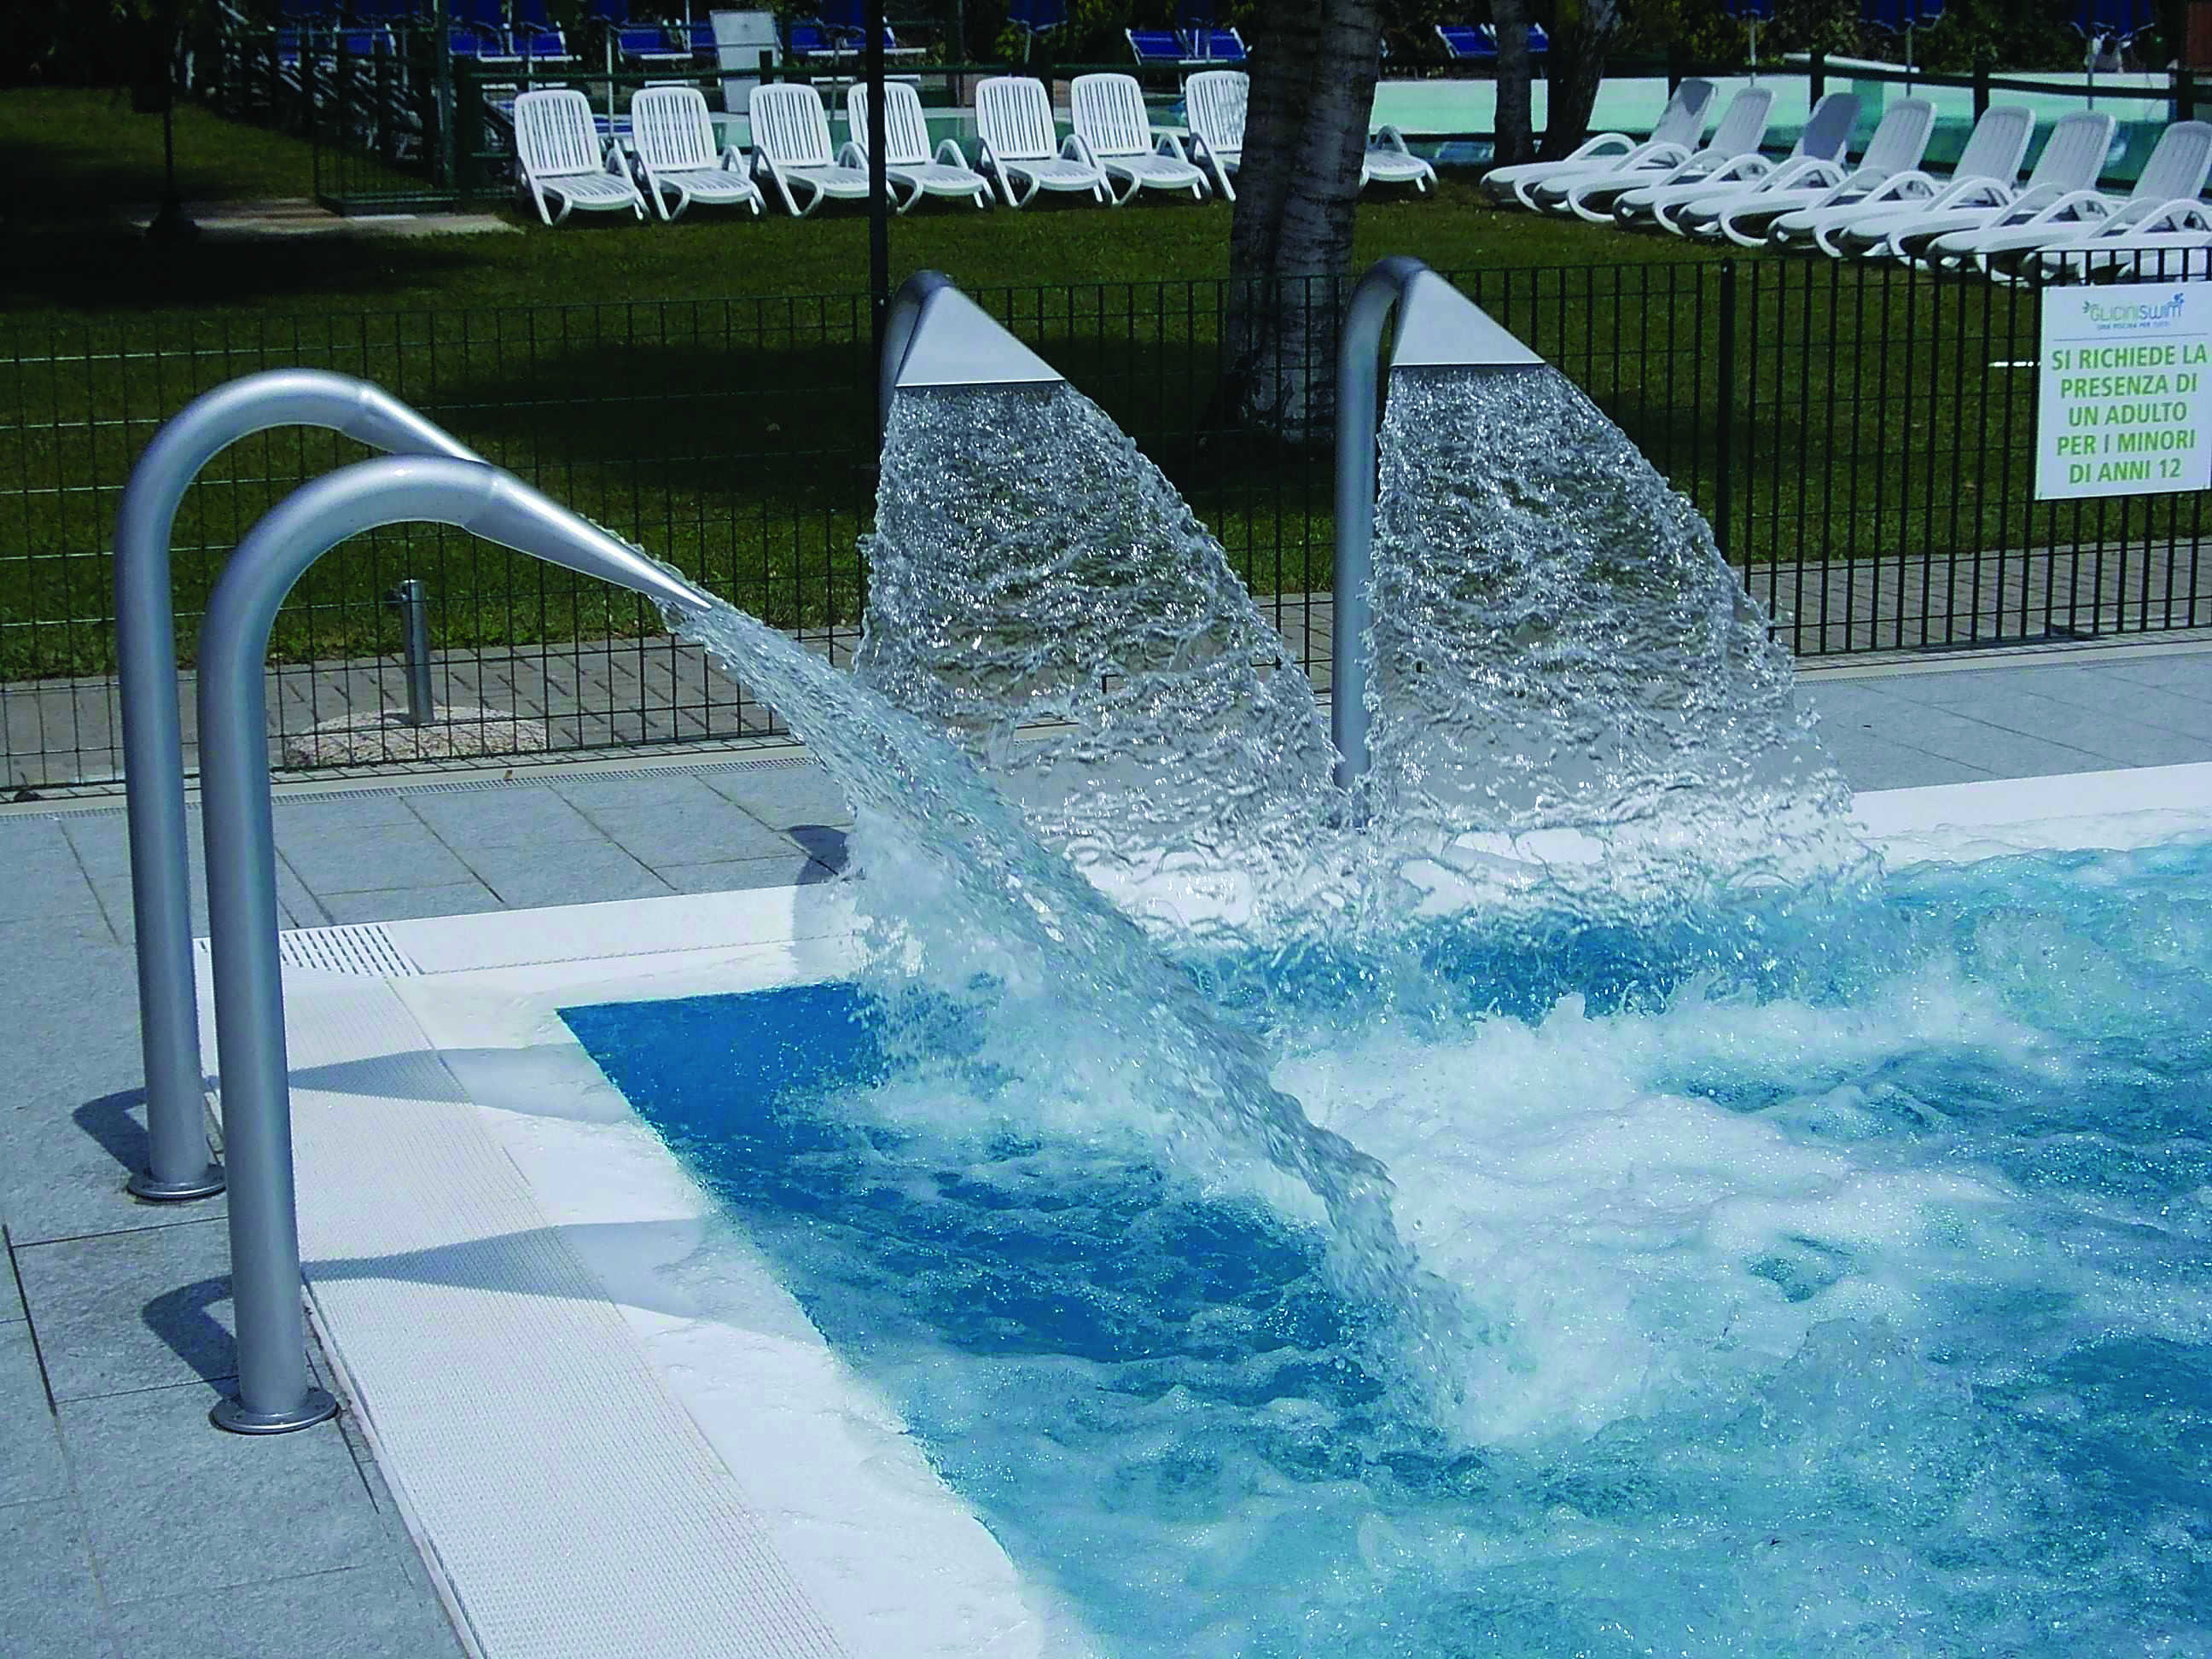 Stainless steel nozzle fountains